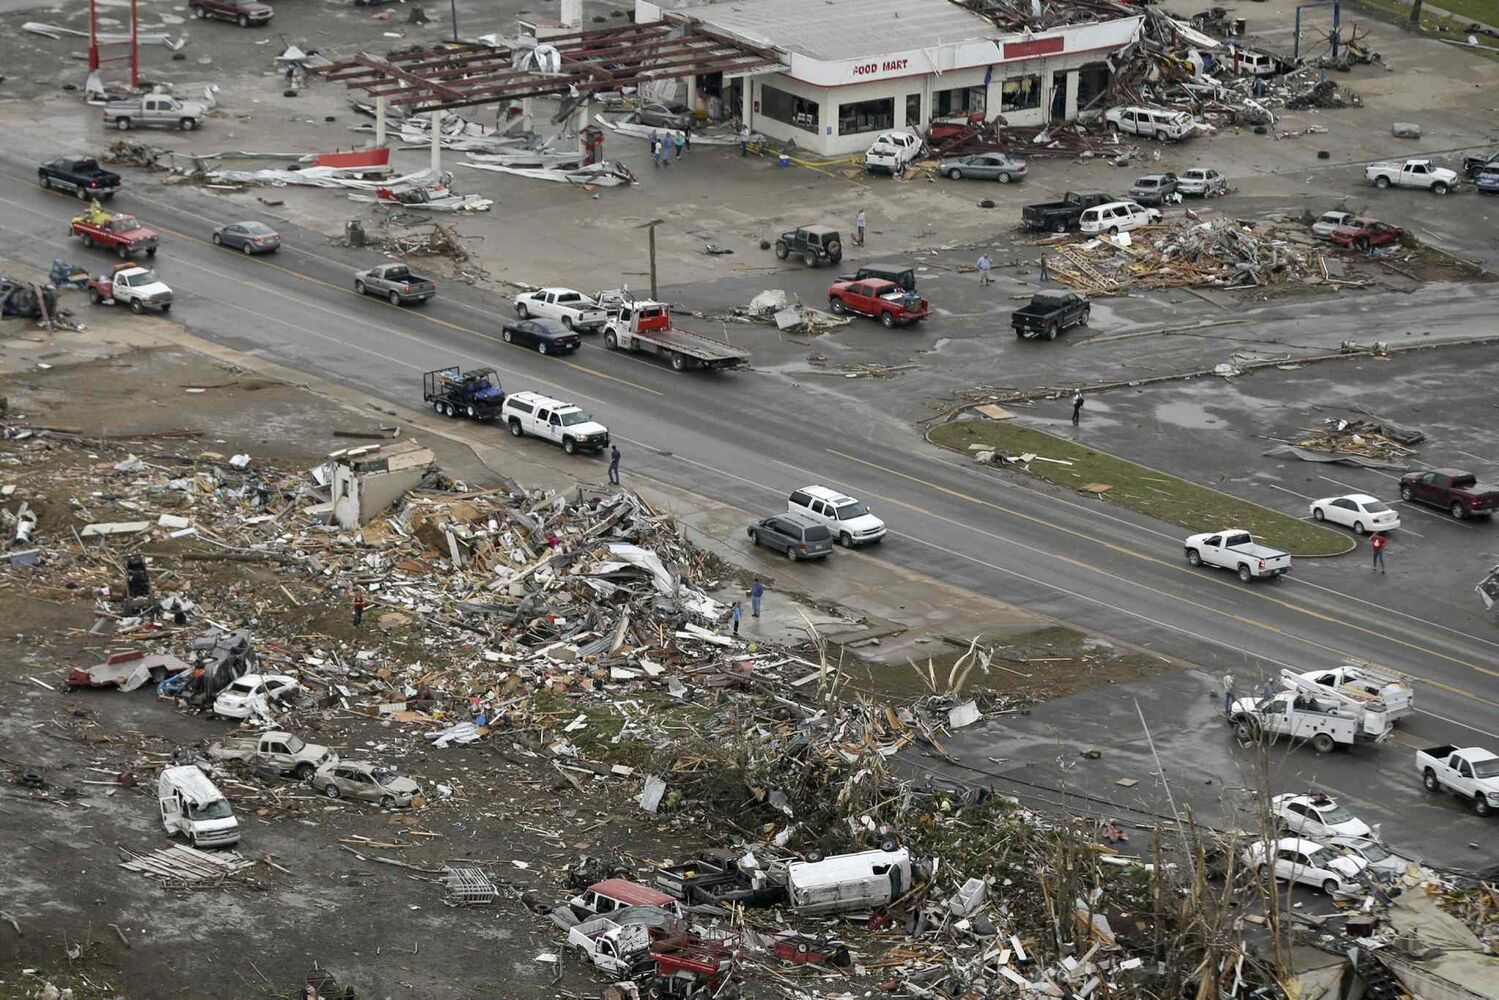 Homes and businesses are wrecked in downton Vilonia, Ark., Monday, April 28, 2014 after a tornado struck the town late Sunday.  (Danny Johnston / The Associated Press)